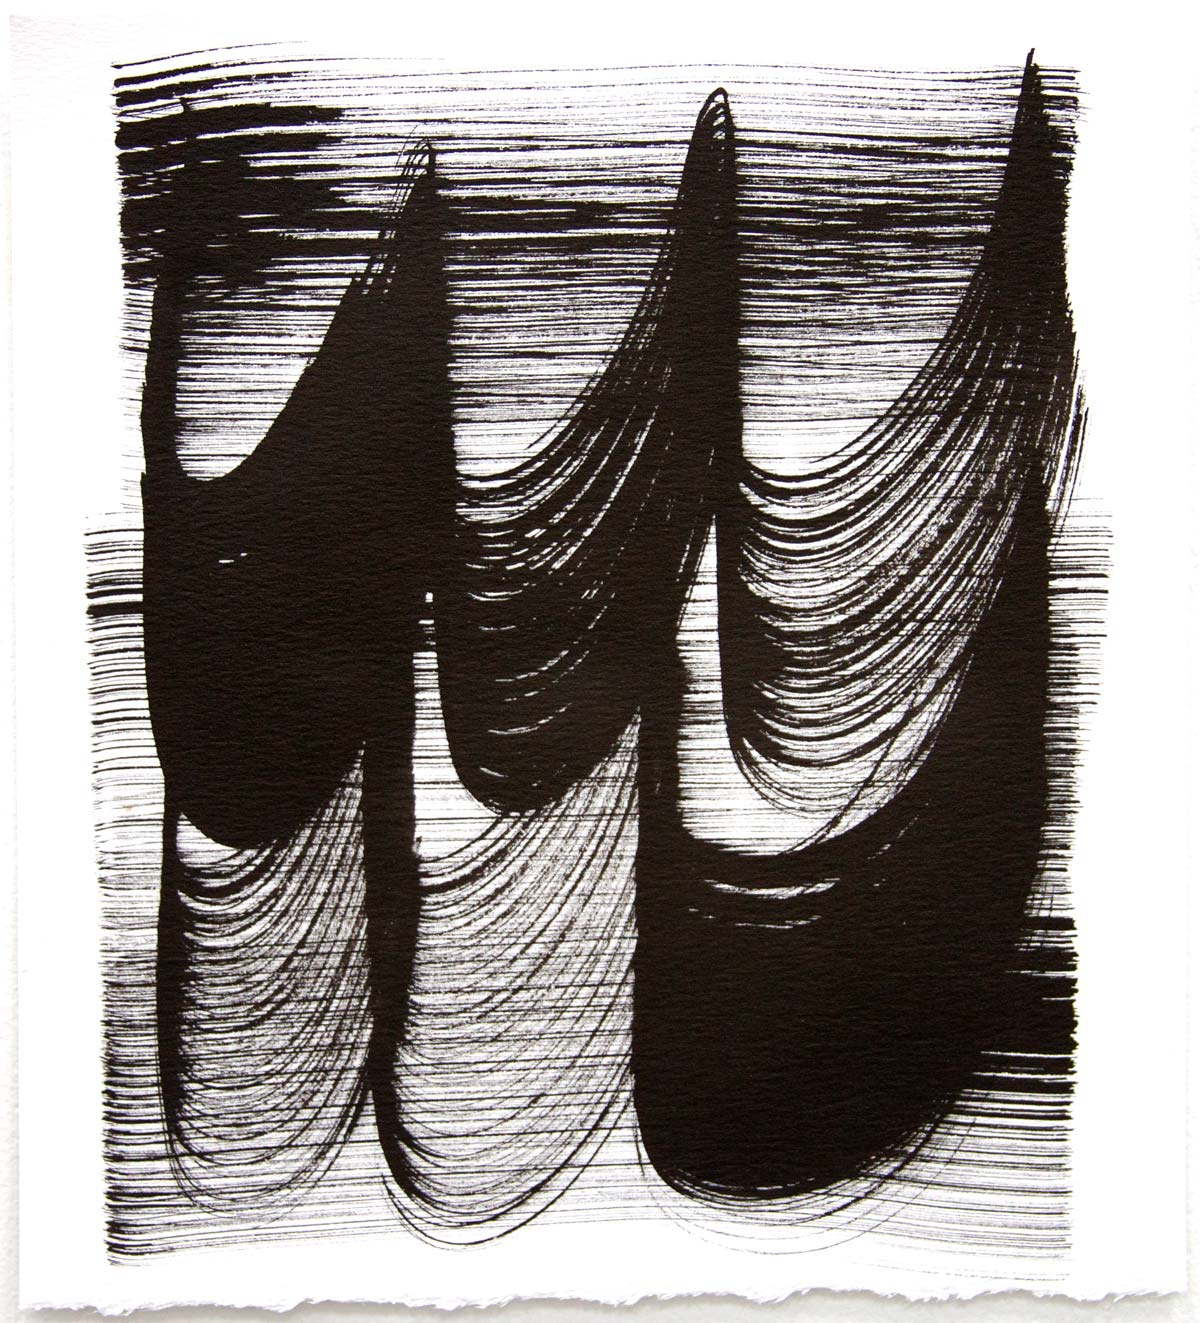 Waves 29,  2018, Sumi Ink on rag paper, 10 x 9 in.